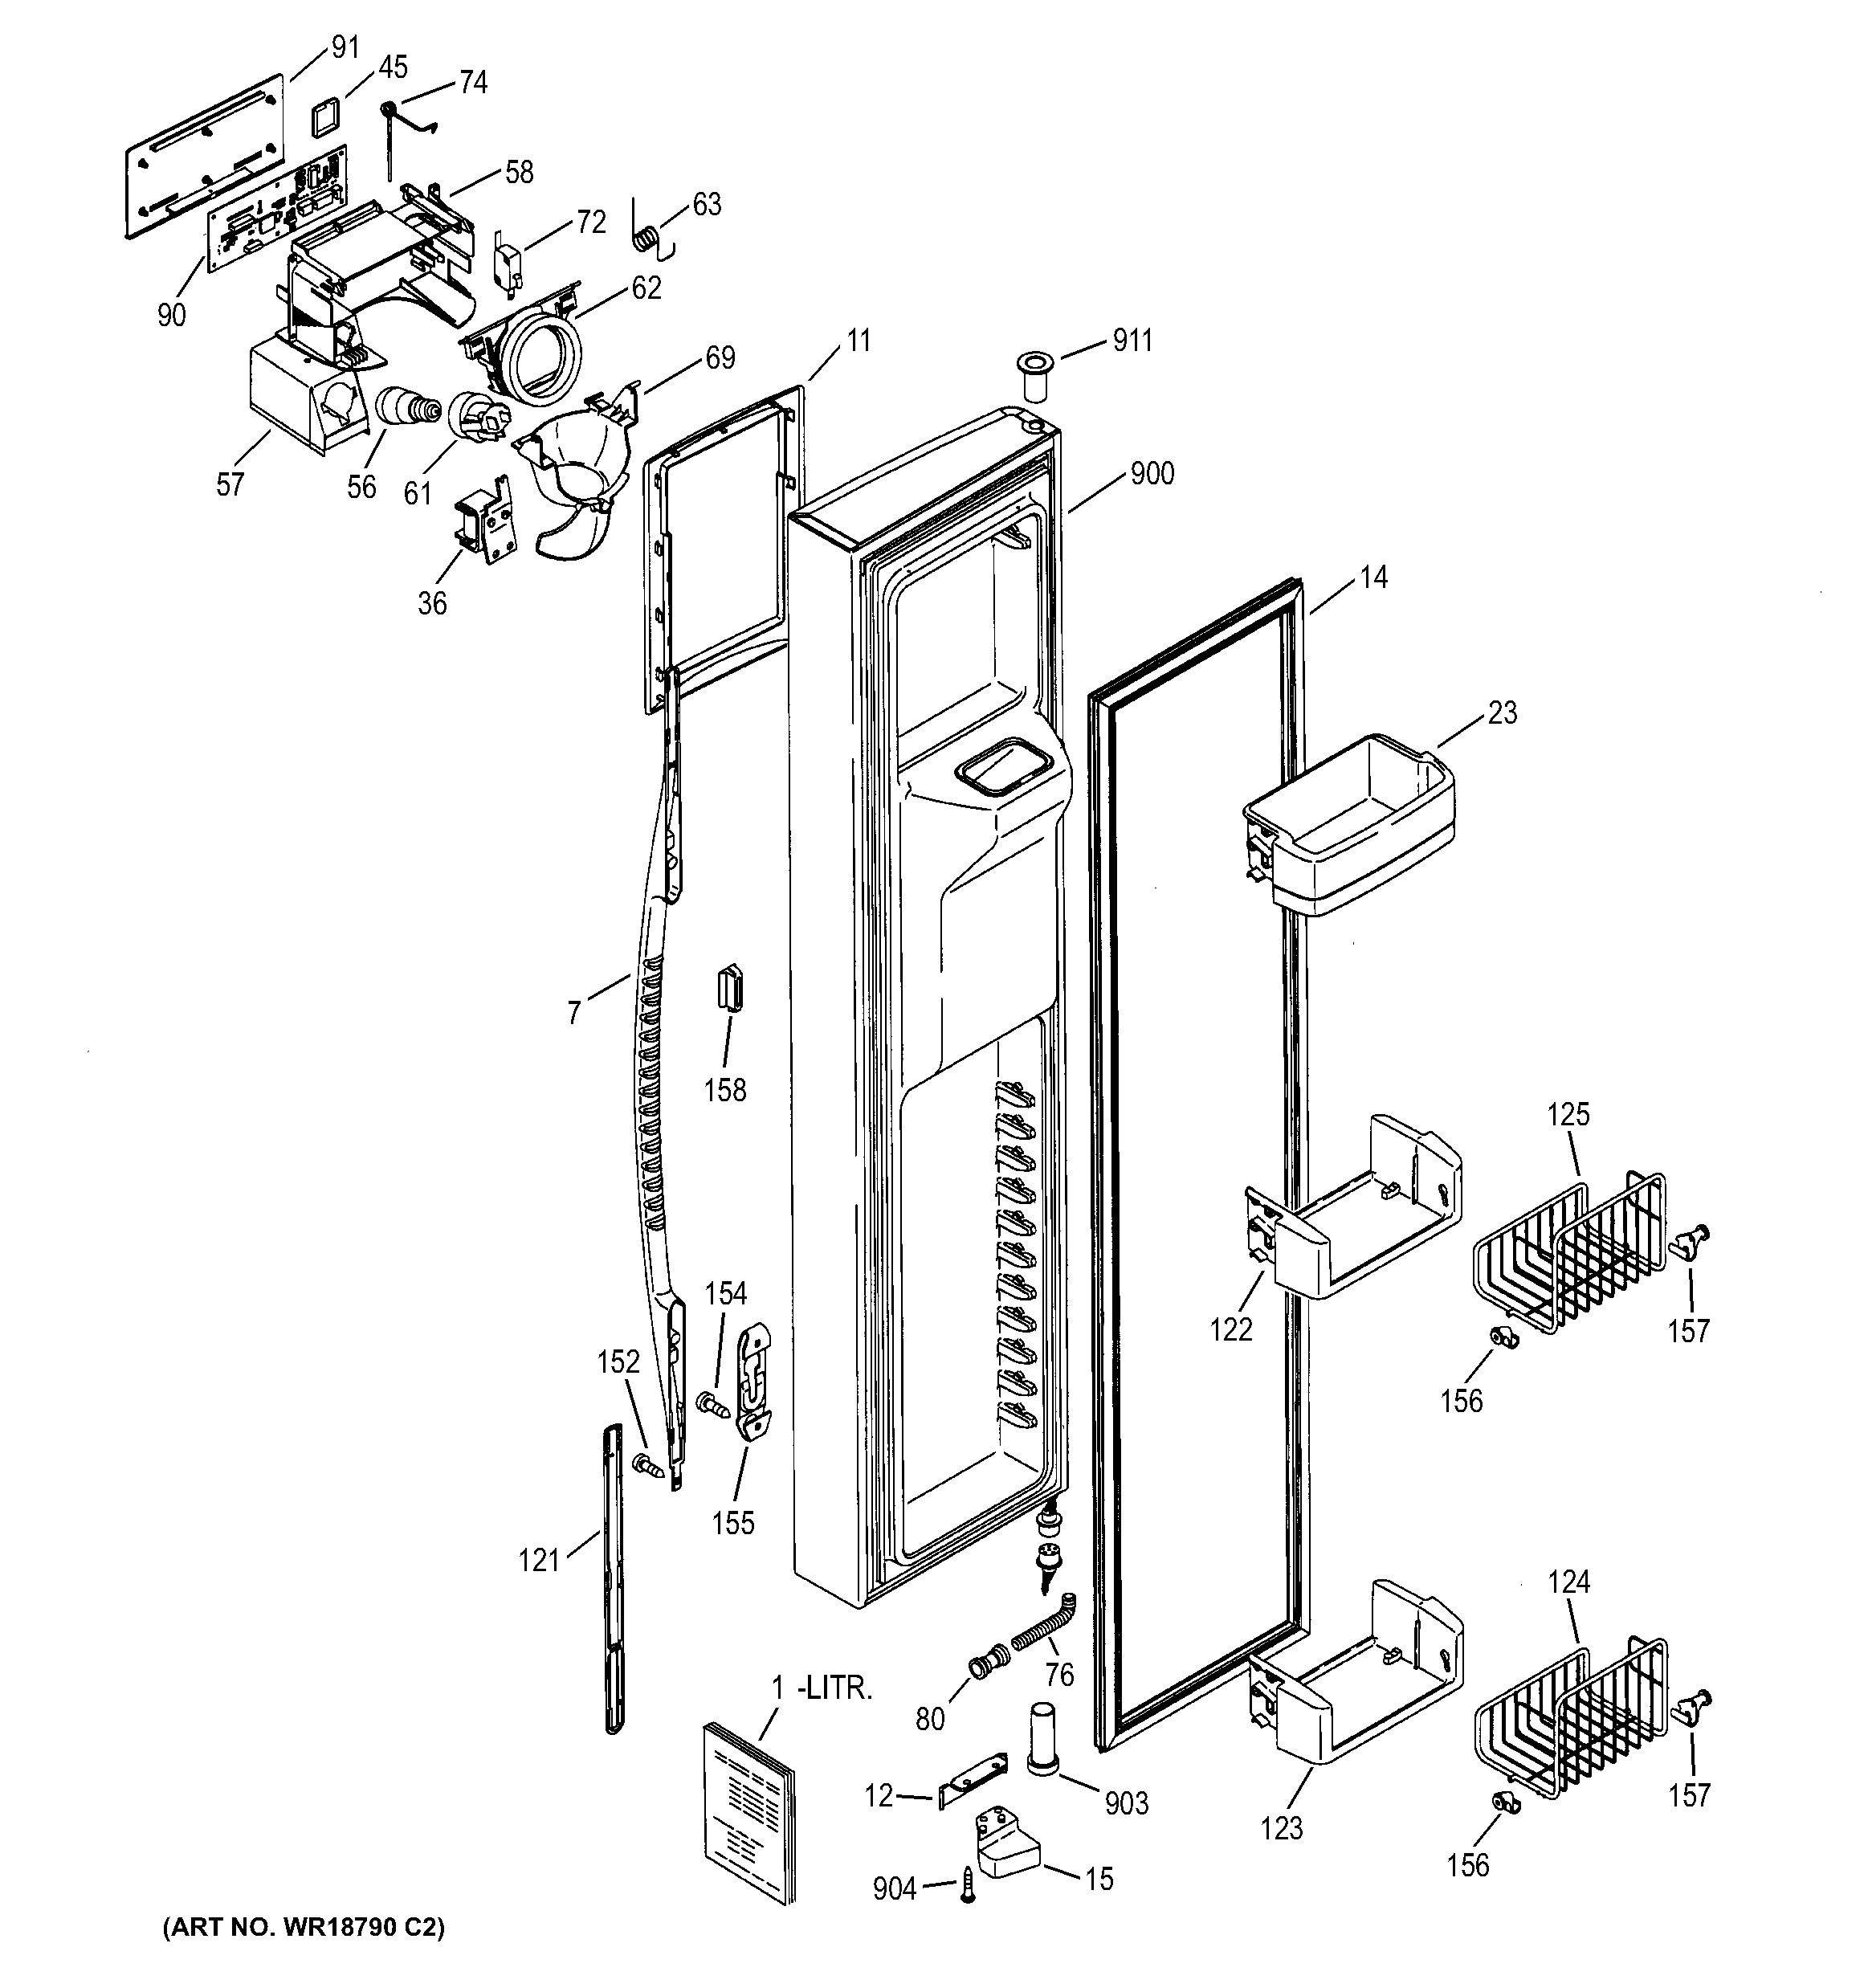 Ge Dishwasher Wiring Diagram Wolf Range Data For Oven Ice Maker Library Of